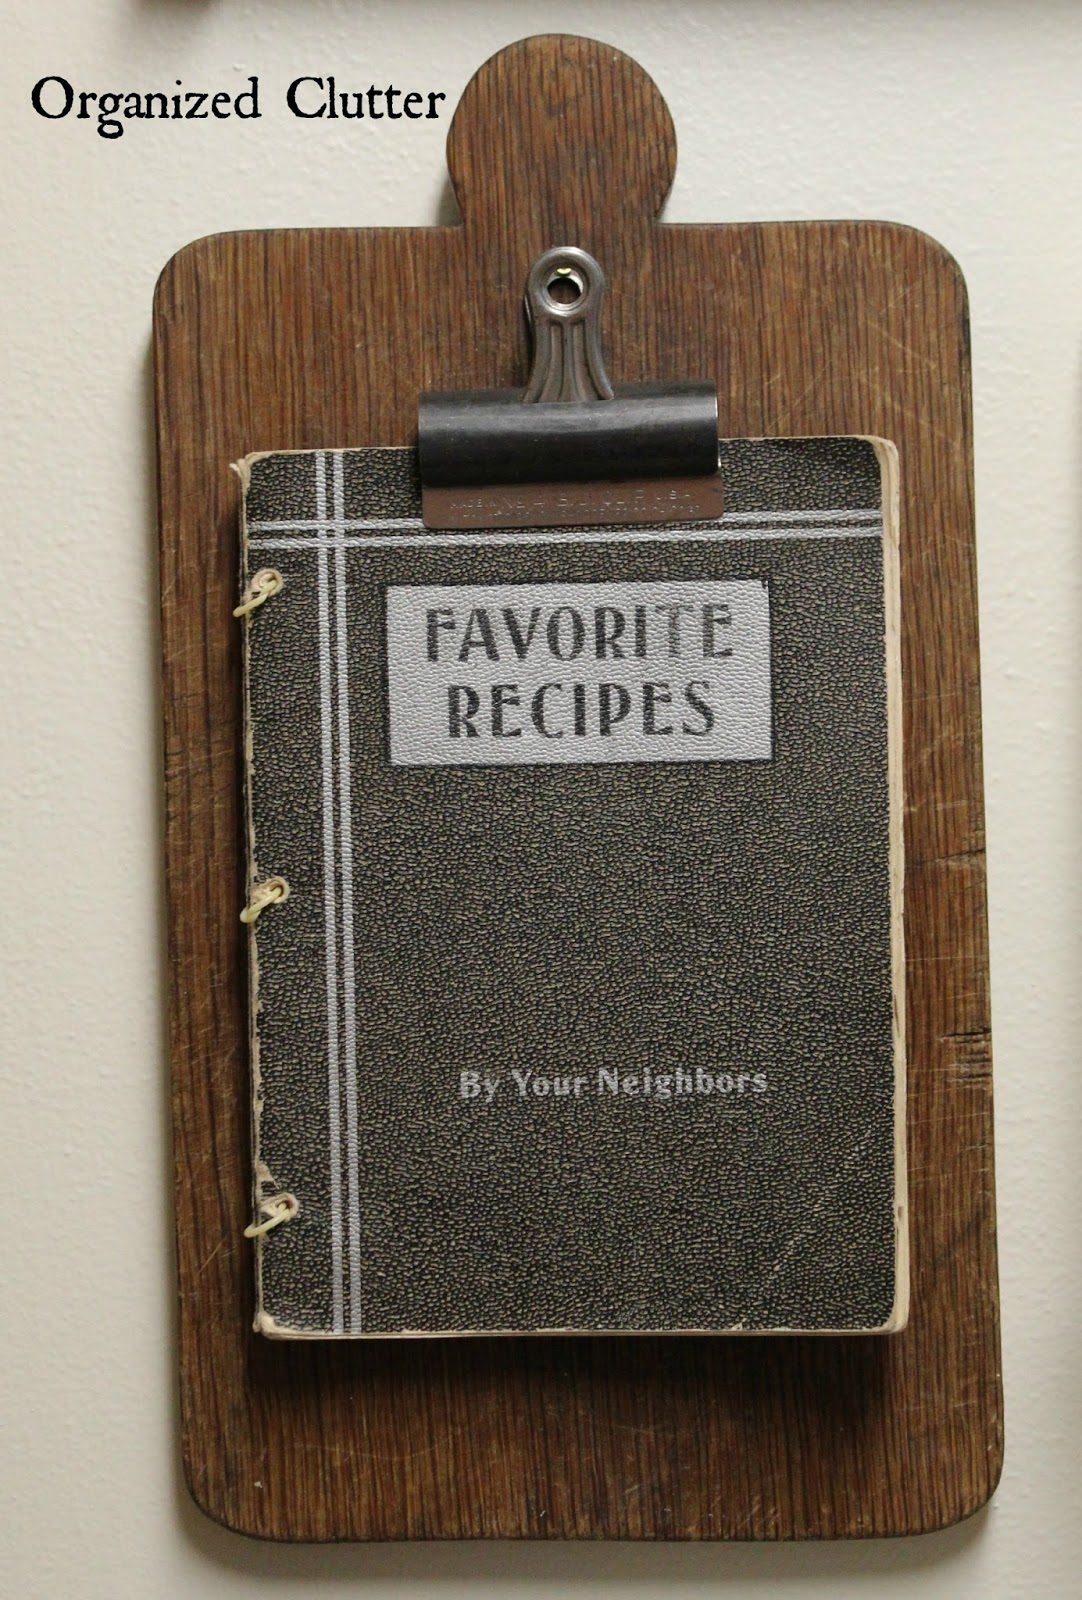 Repurposed Cutting Board www.organizedclutter.net